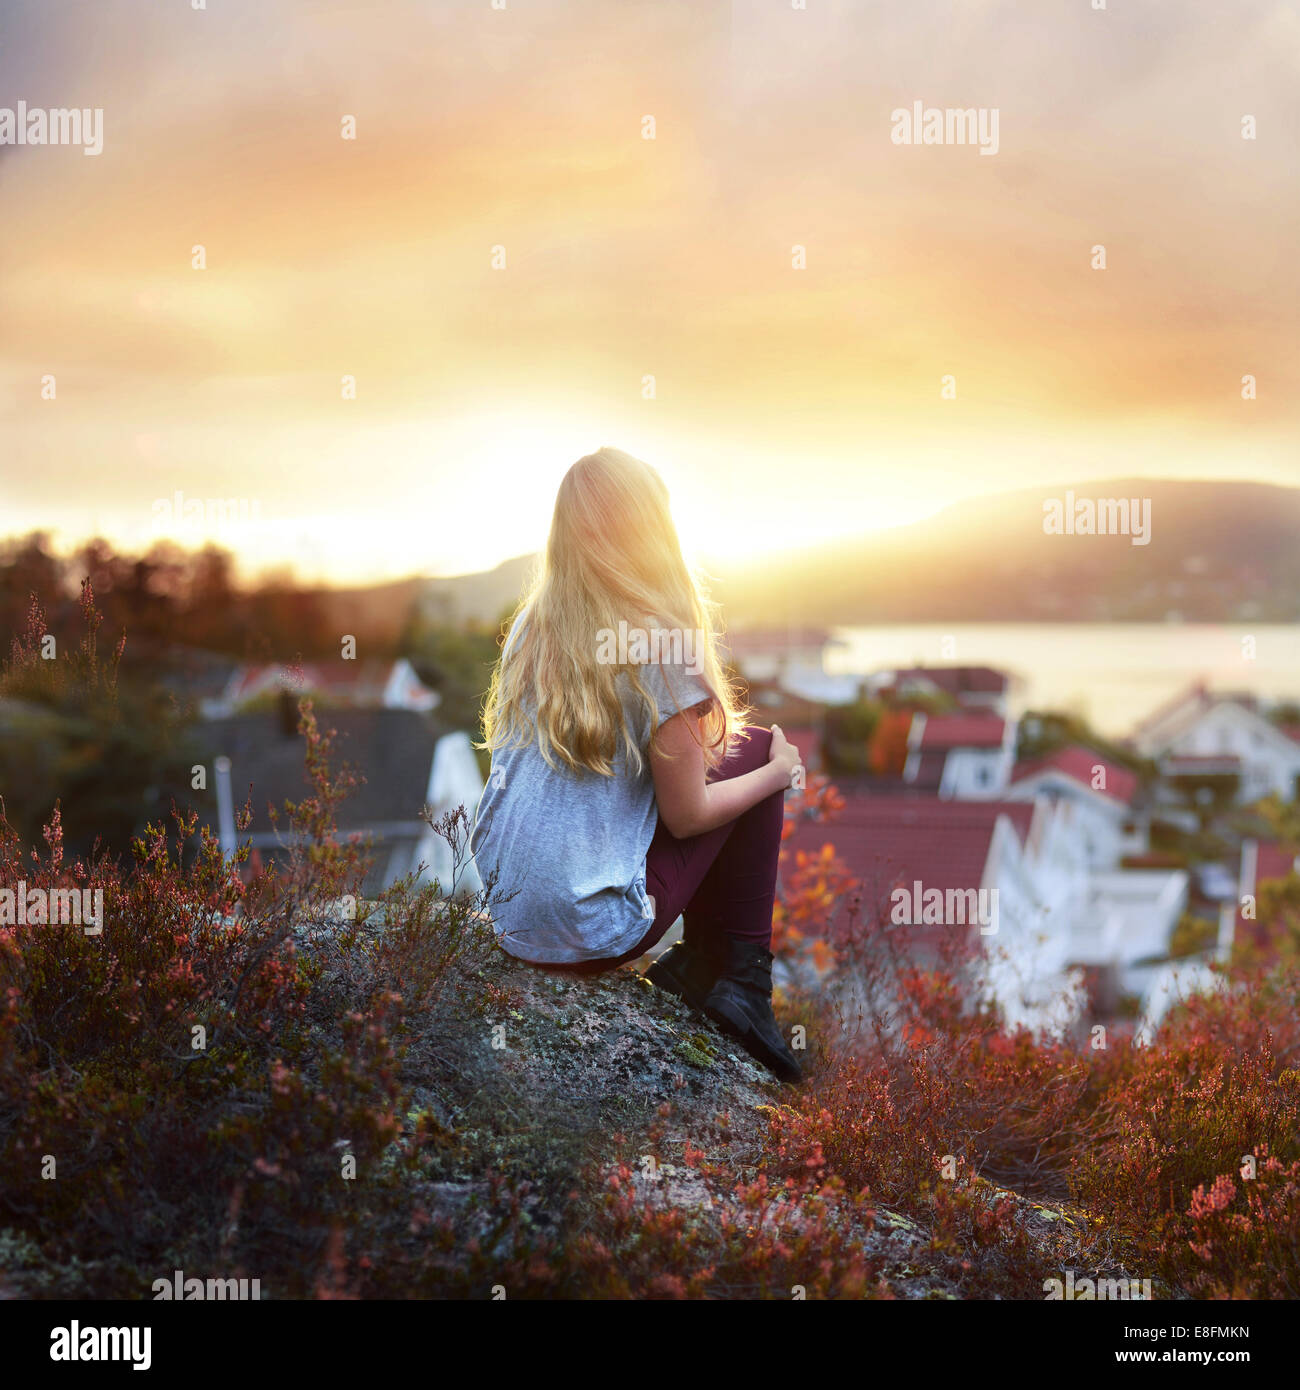 Woman Sitting On A Rock - Stock Image